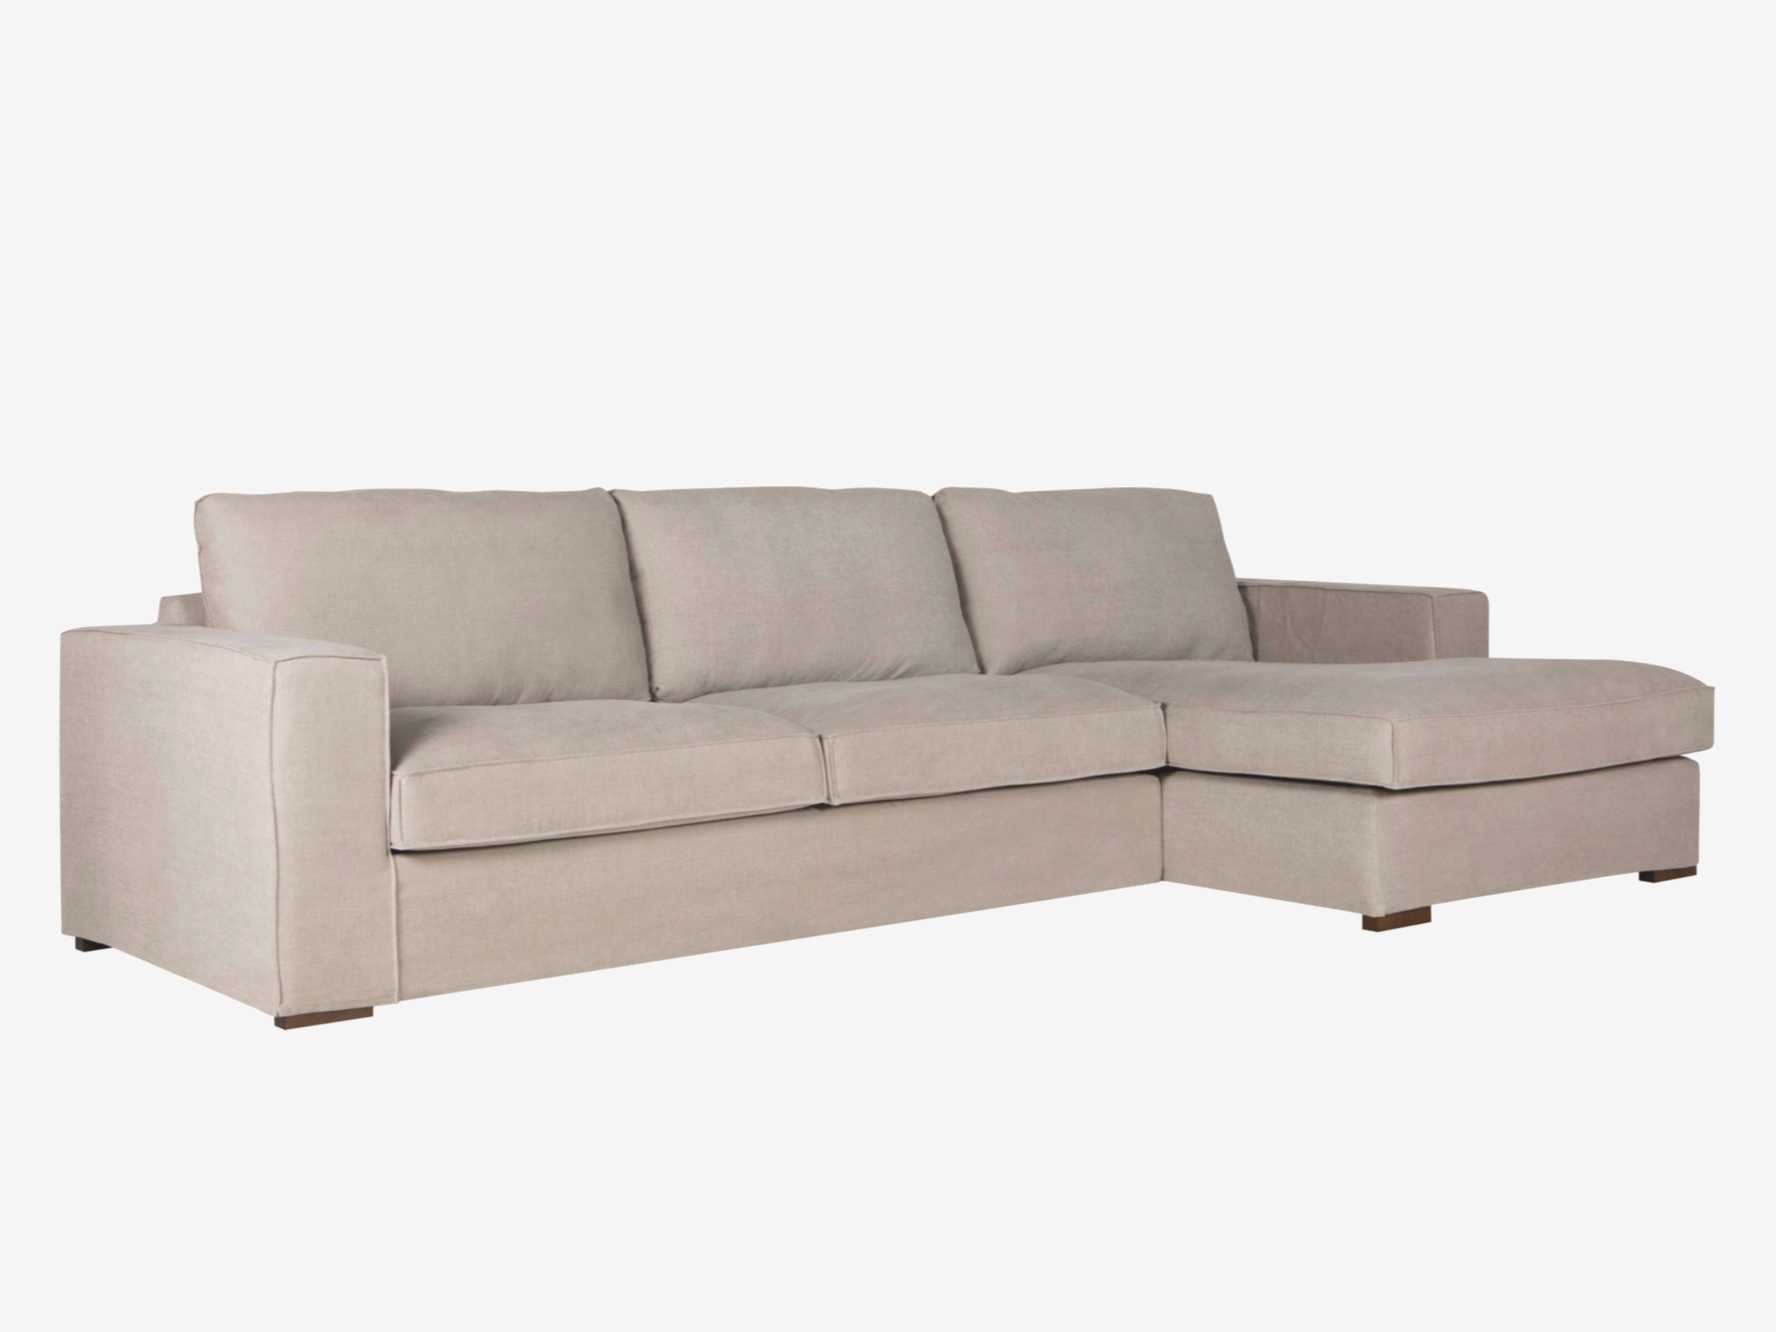 Oferta sofa Chaise Longue Adorable La Mayora Increble sofa Chaise Longue Erta Acerca De Of 41  Encantador Oferta sofa Chaise Longue